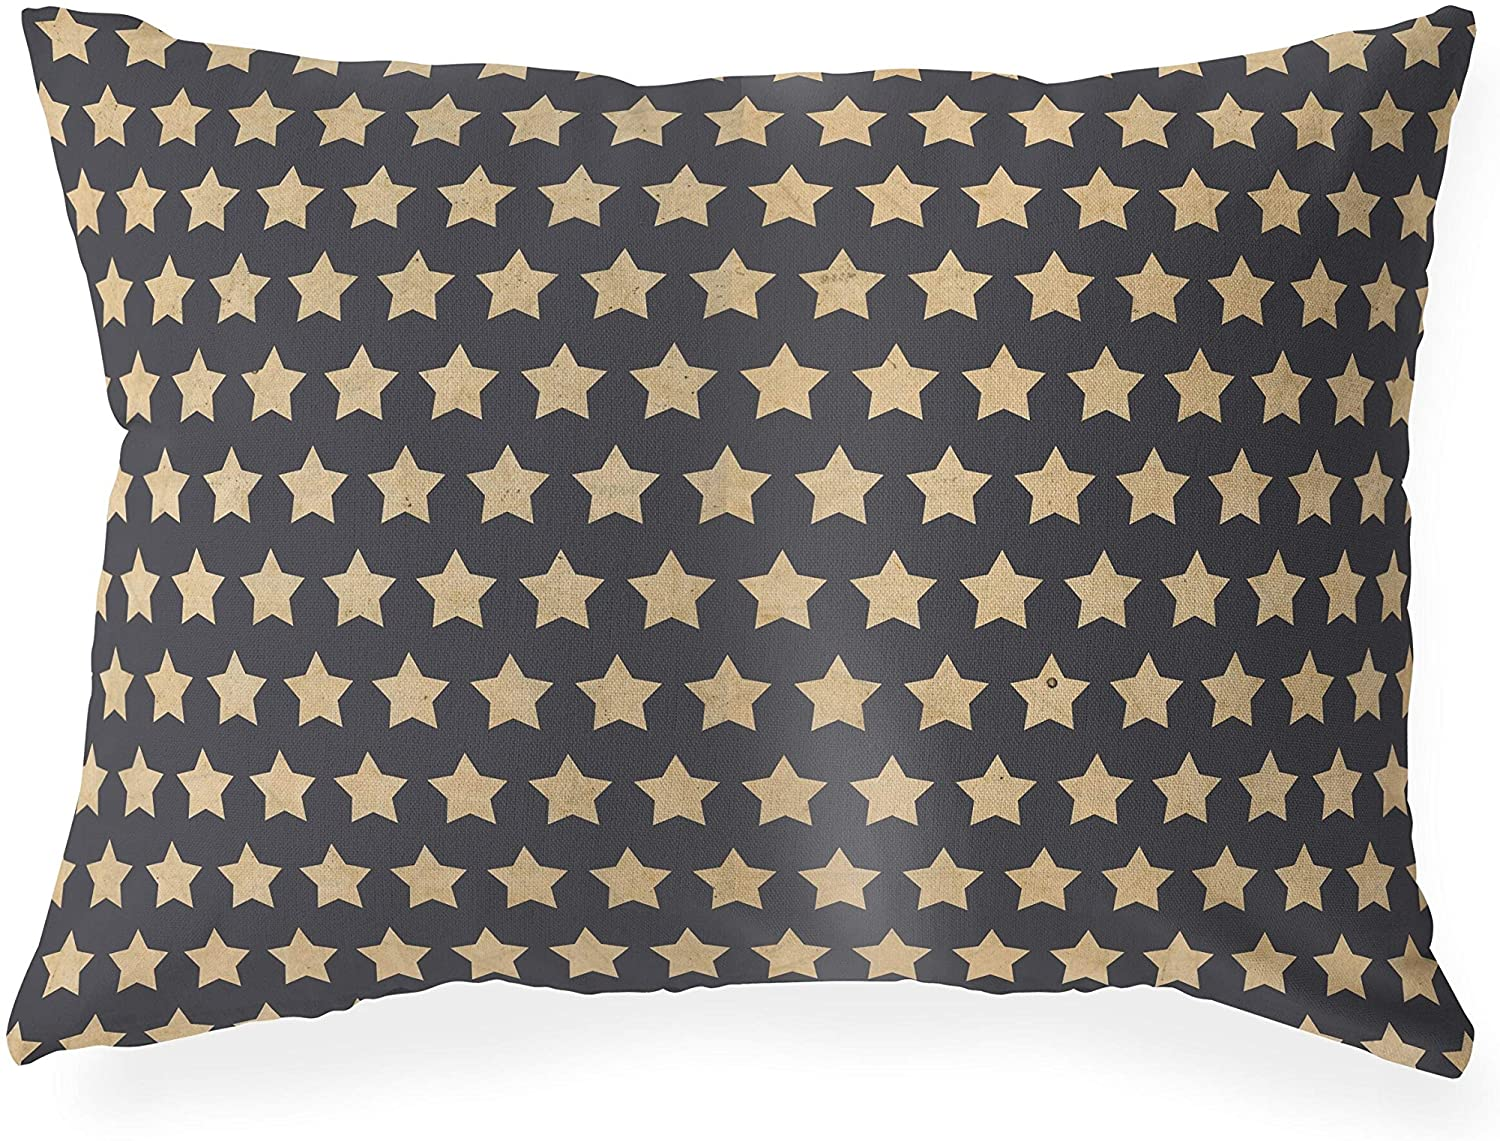 MISC Stars Blue Indoor|Outdoor Lumbar Pillow by Designs - 20x14 Blue Geometric Polyester Removable Cover